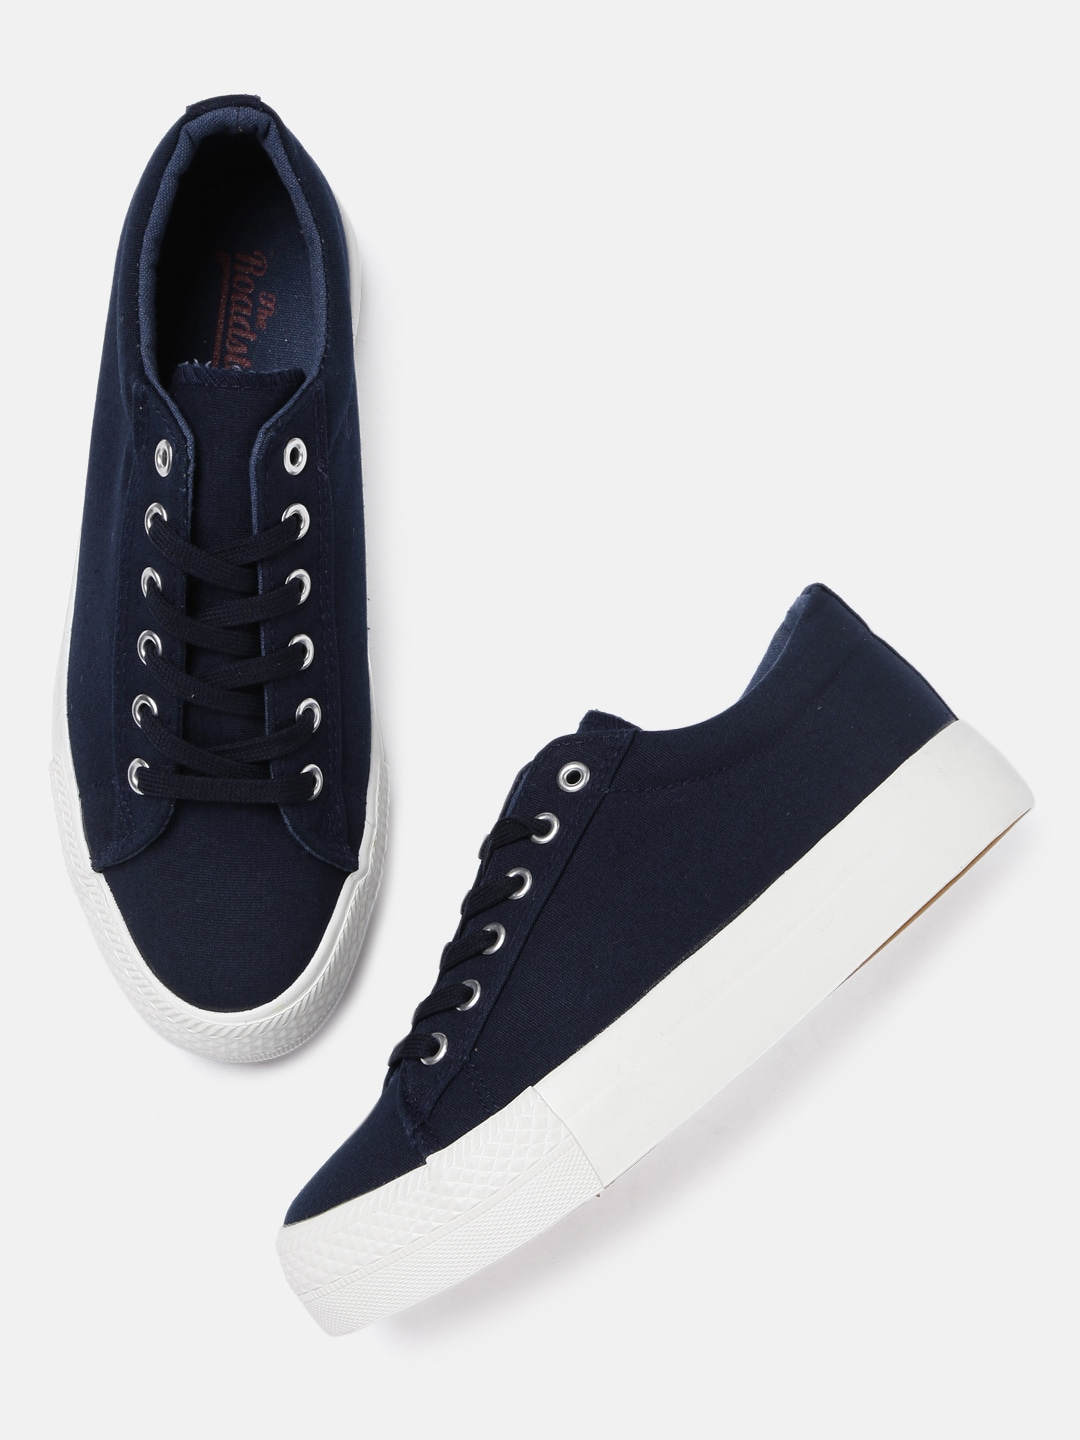 5e06d088941c Buy Roadster Brand Casual Shoes Online from Myntra